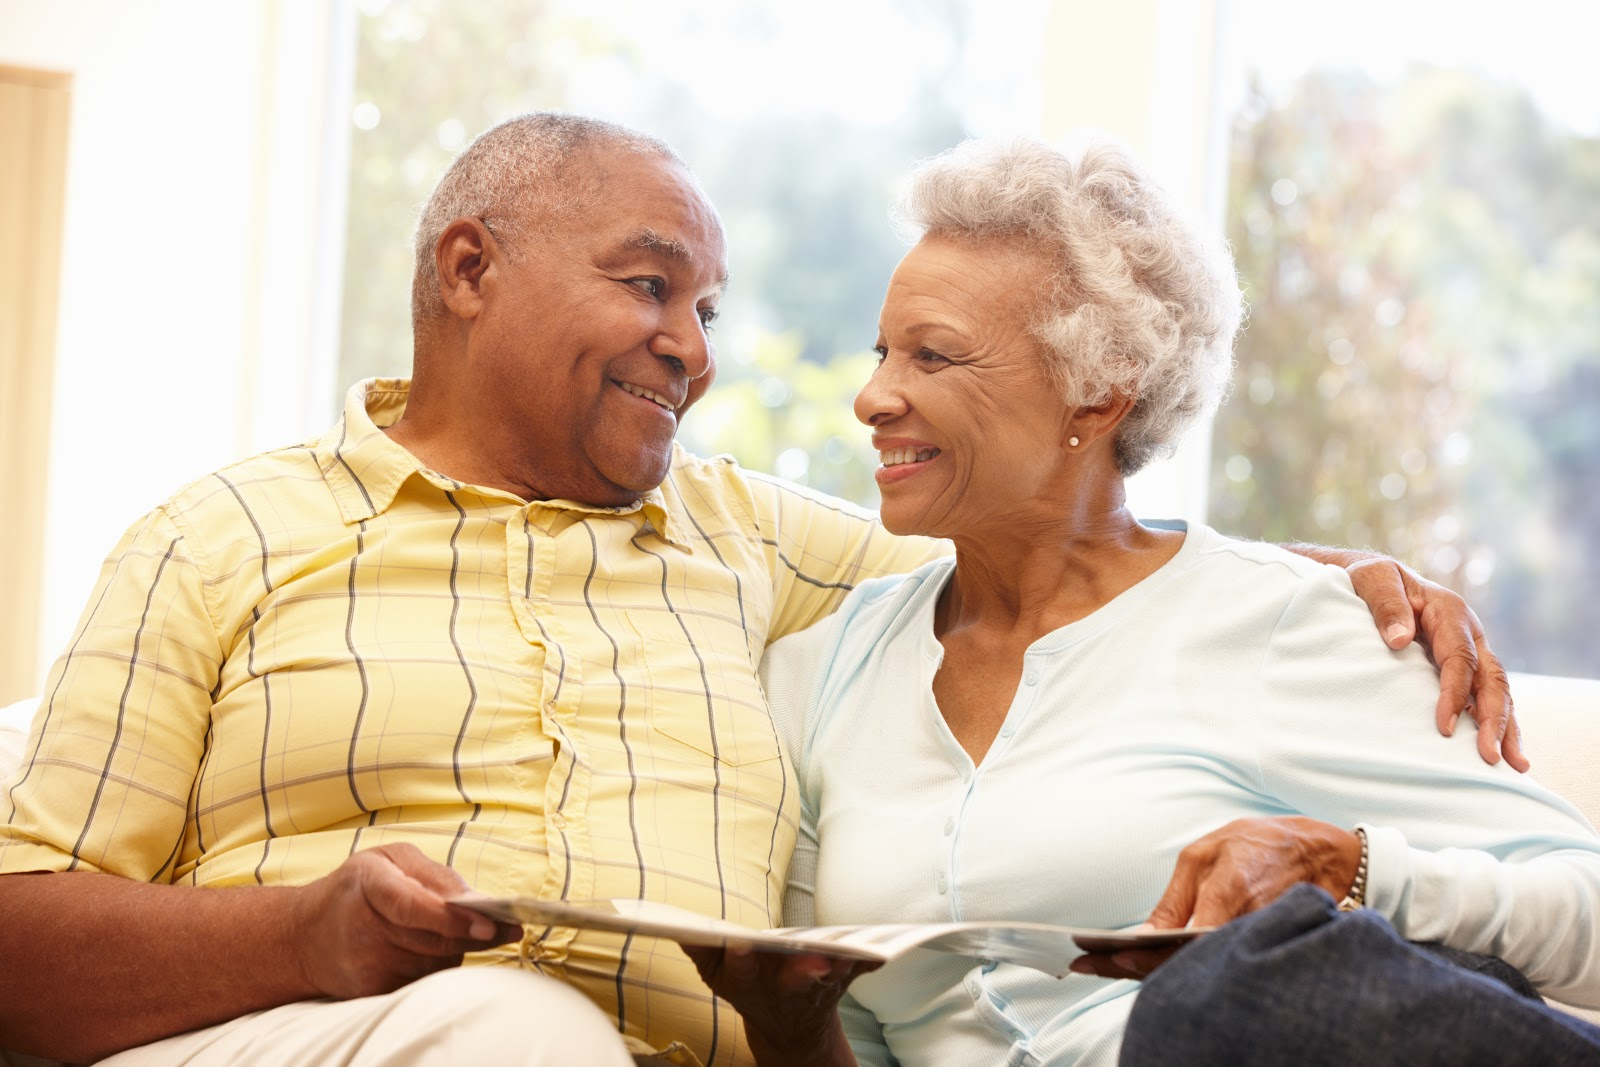 Senior couple smiling and looking at each other